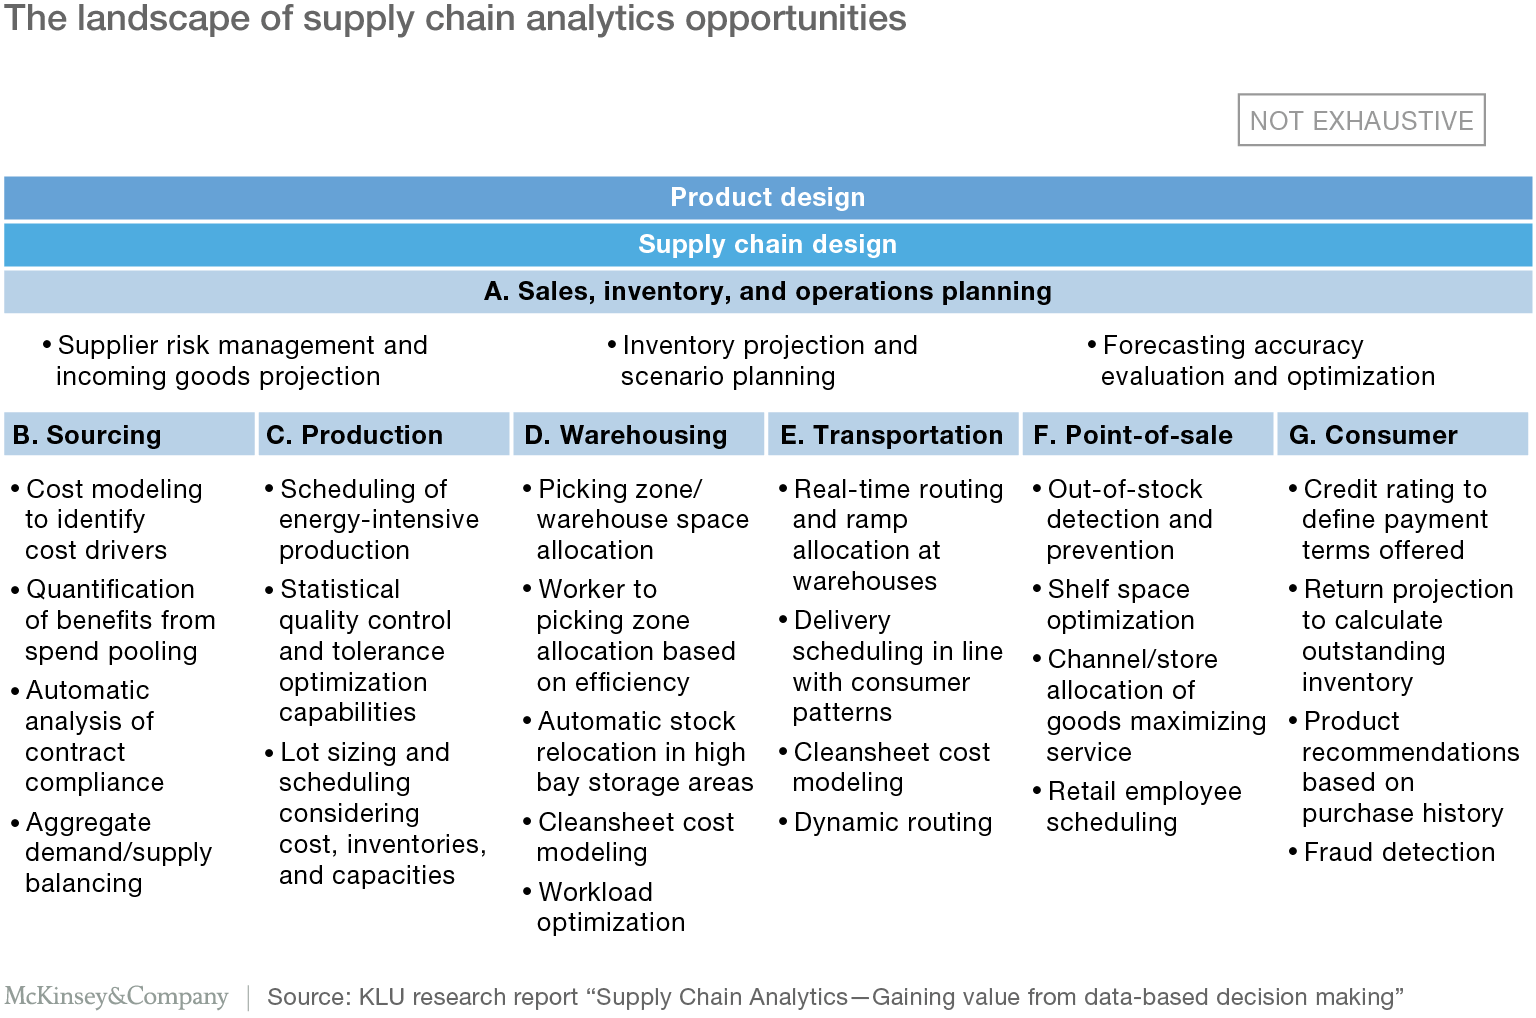 Big Data And The Supply Chain The Big Supply Chain Analytics Landscape Part 1 Mckinsey